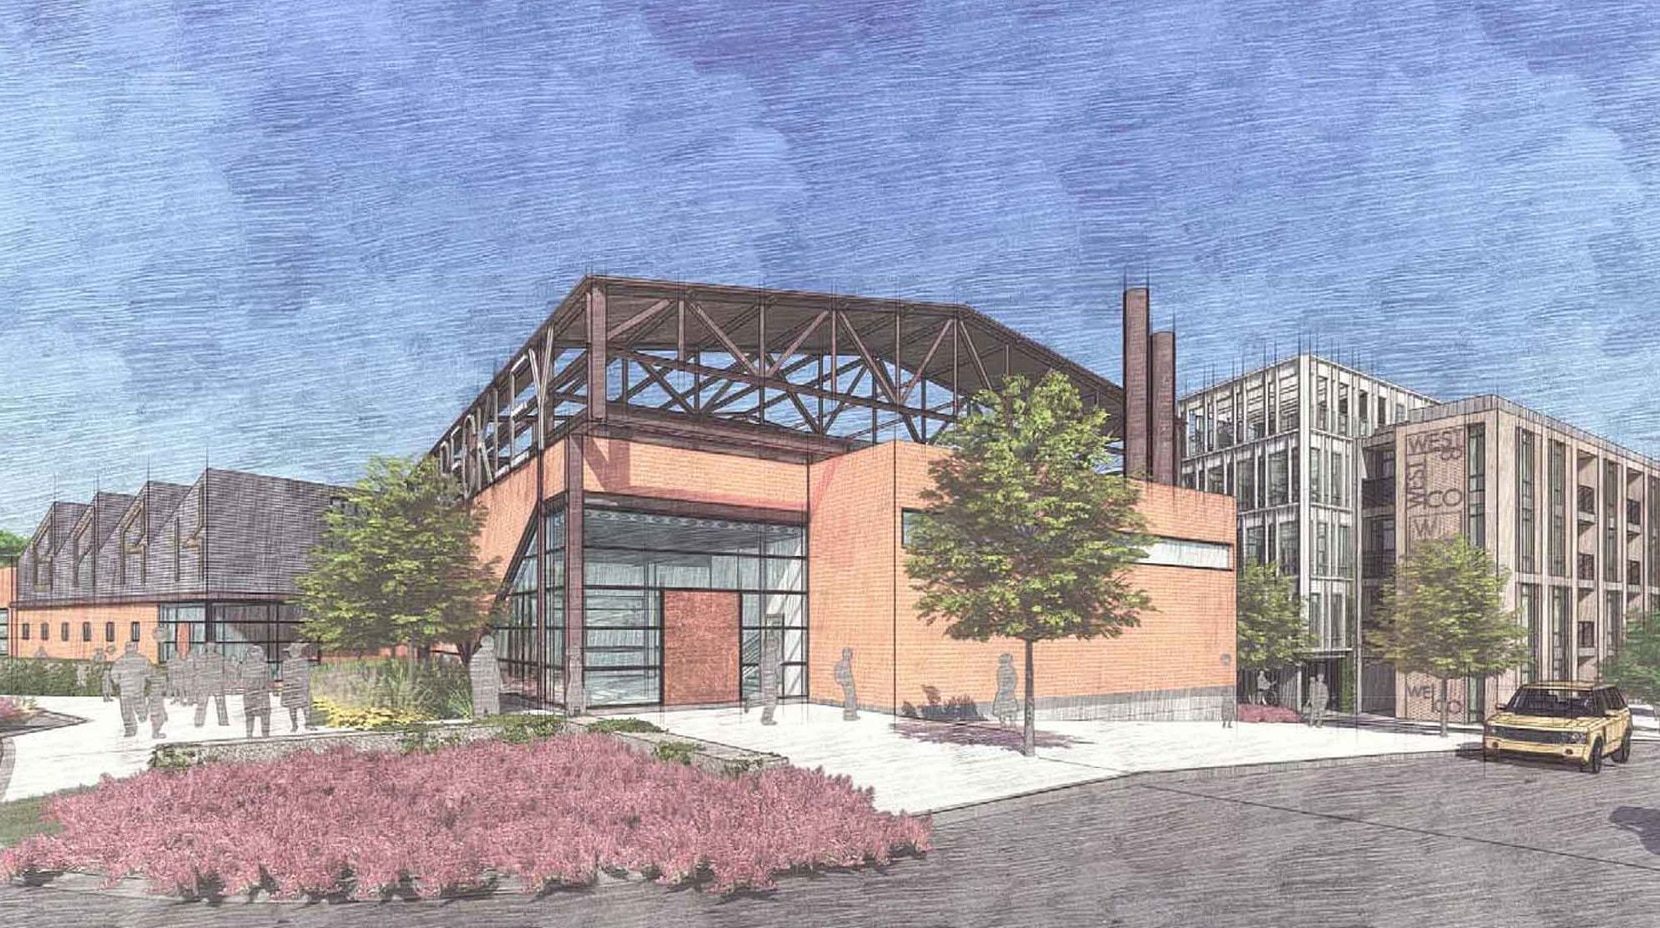 The Commerce Street project will include apartments, retail and office space..